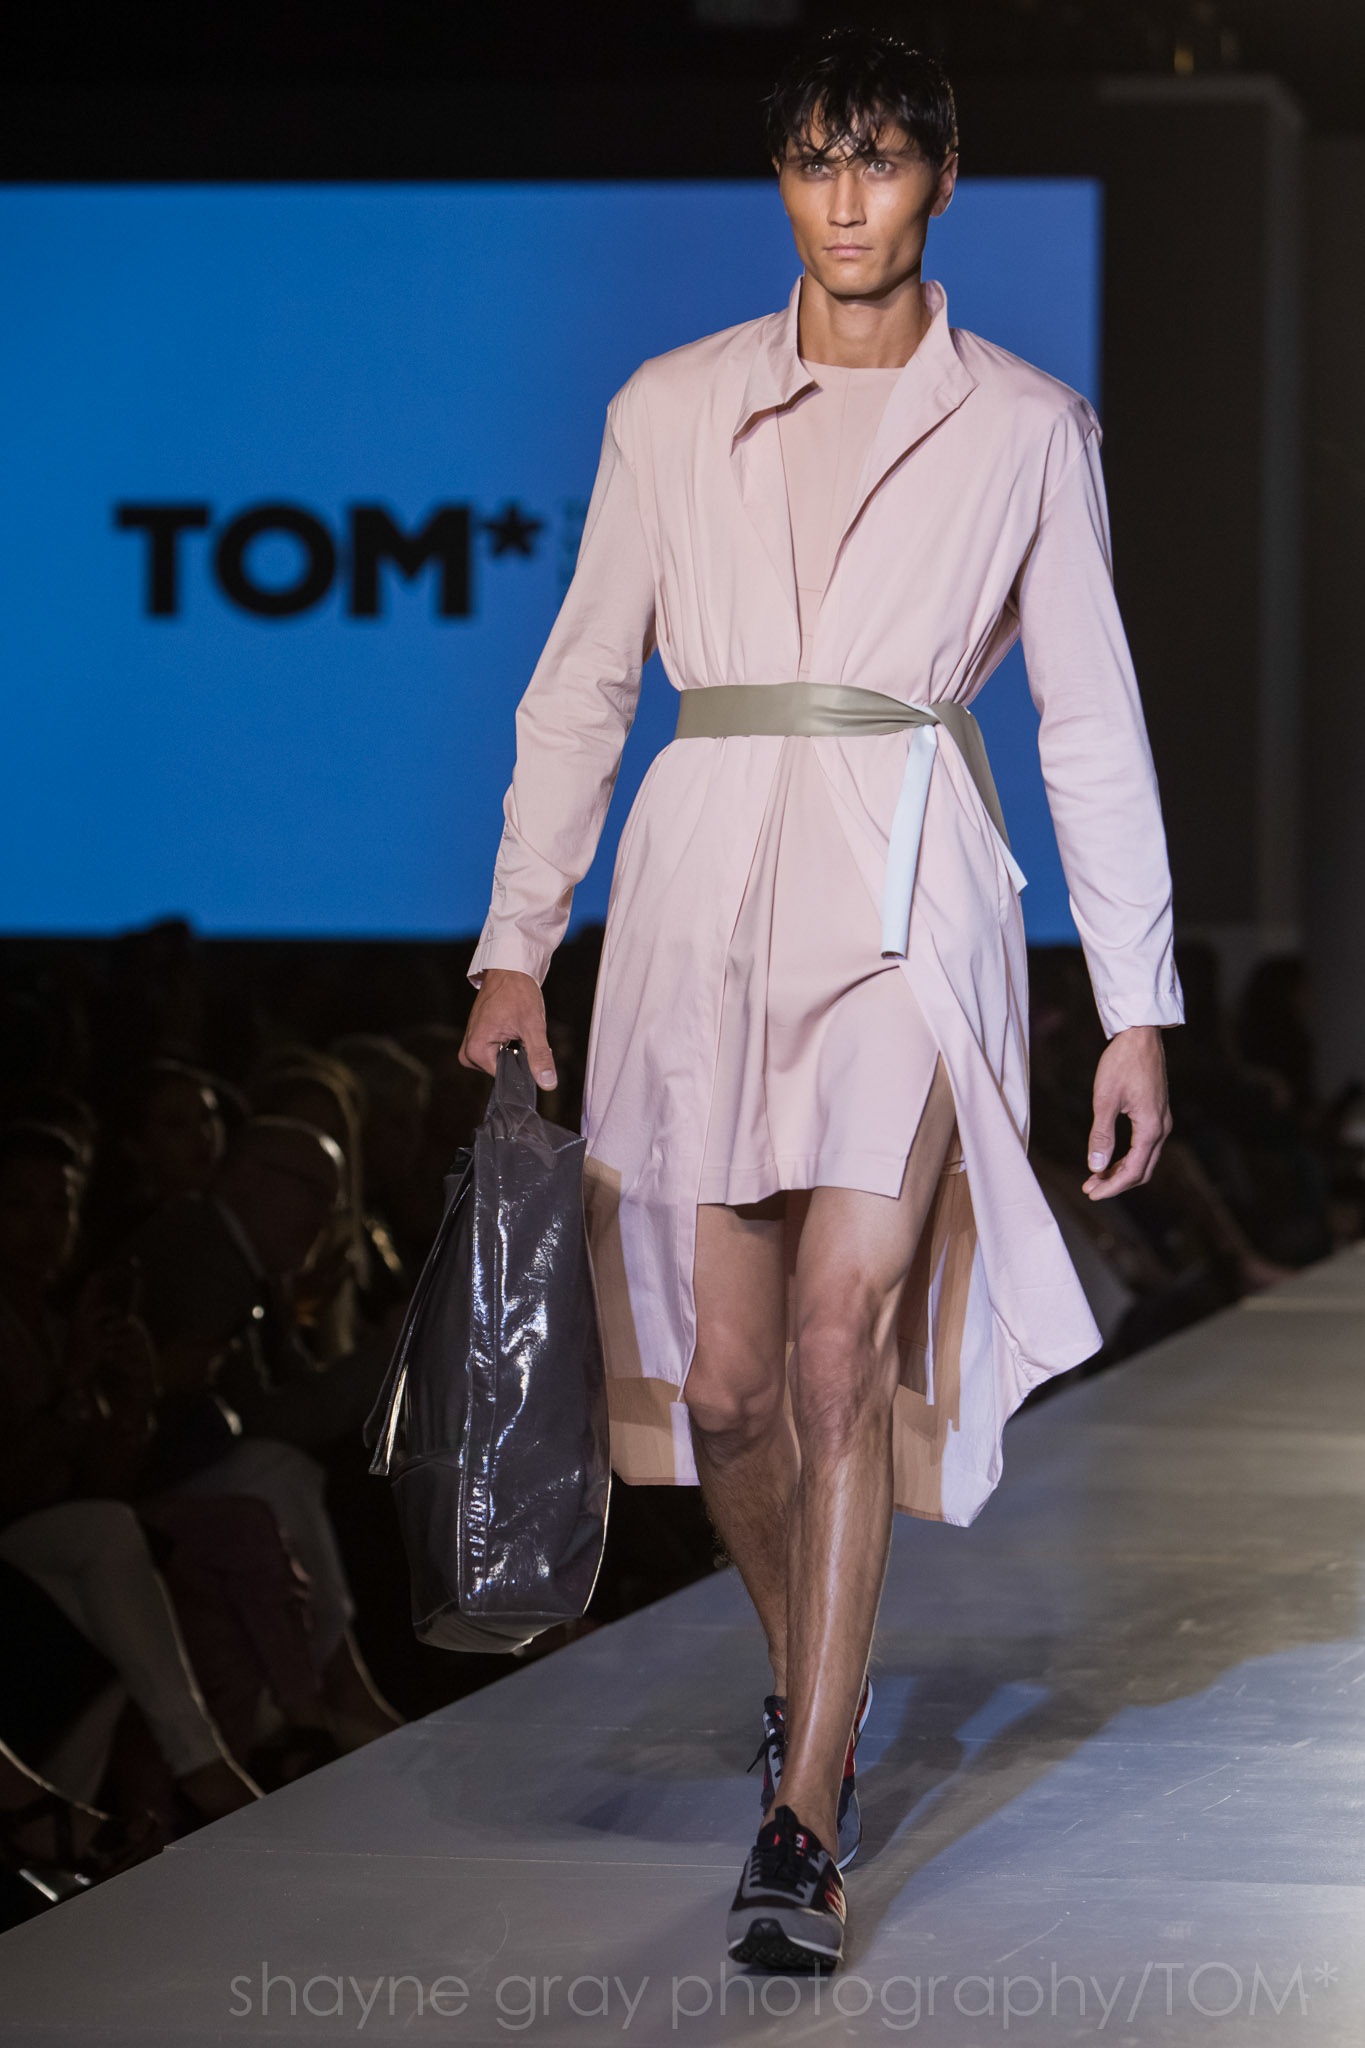 Shayne-Gray-Toronto-men's-fashion_week-TOM-Pedram-Karimi-8874.jpg